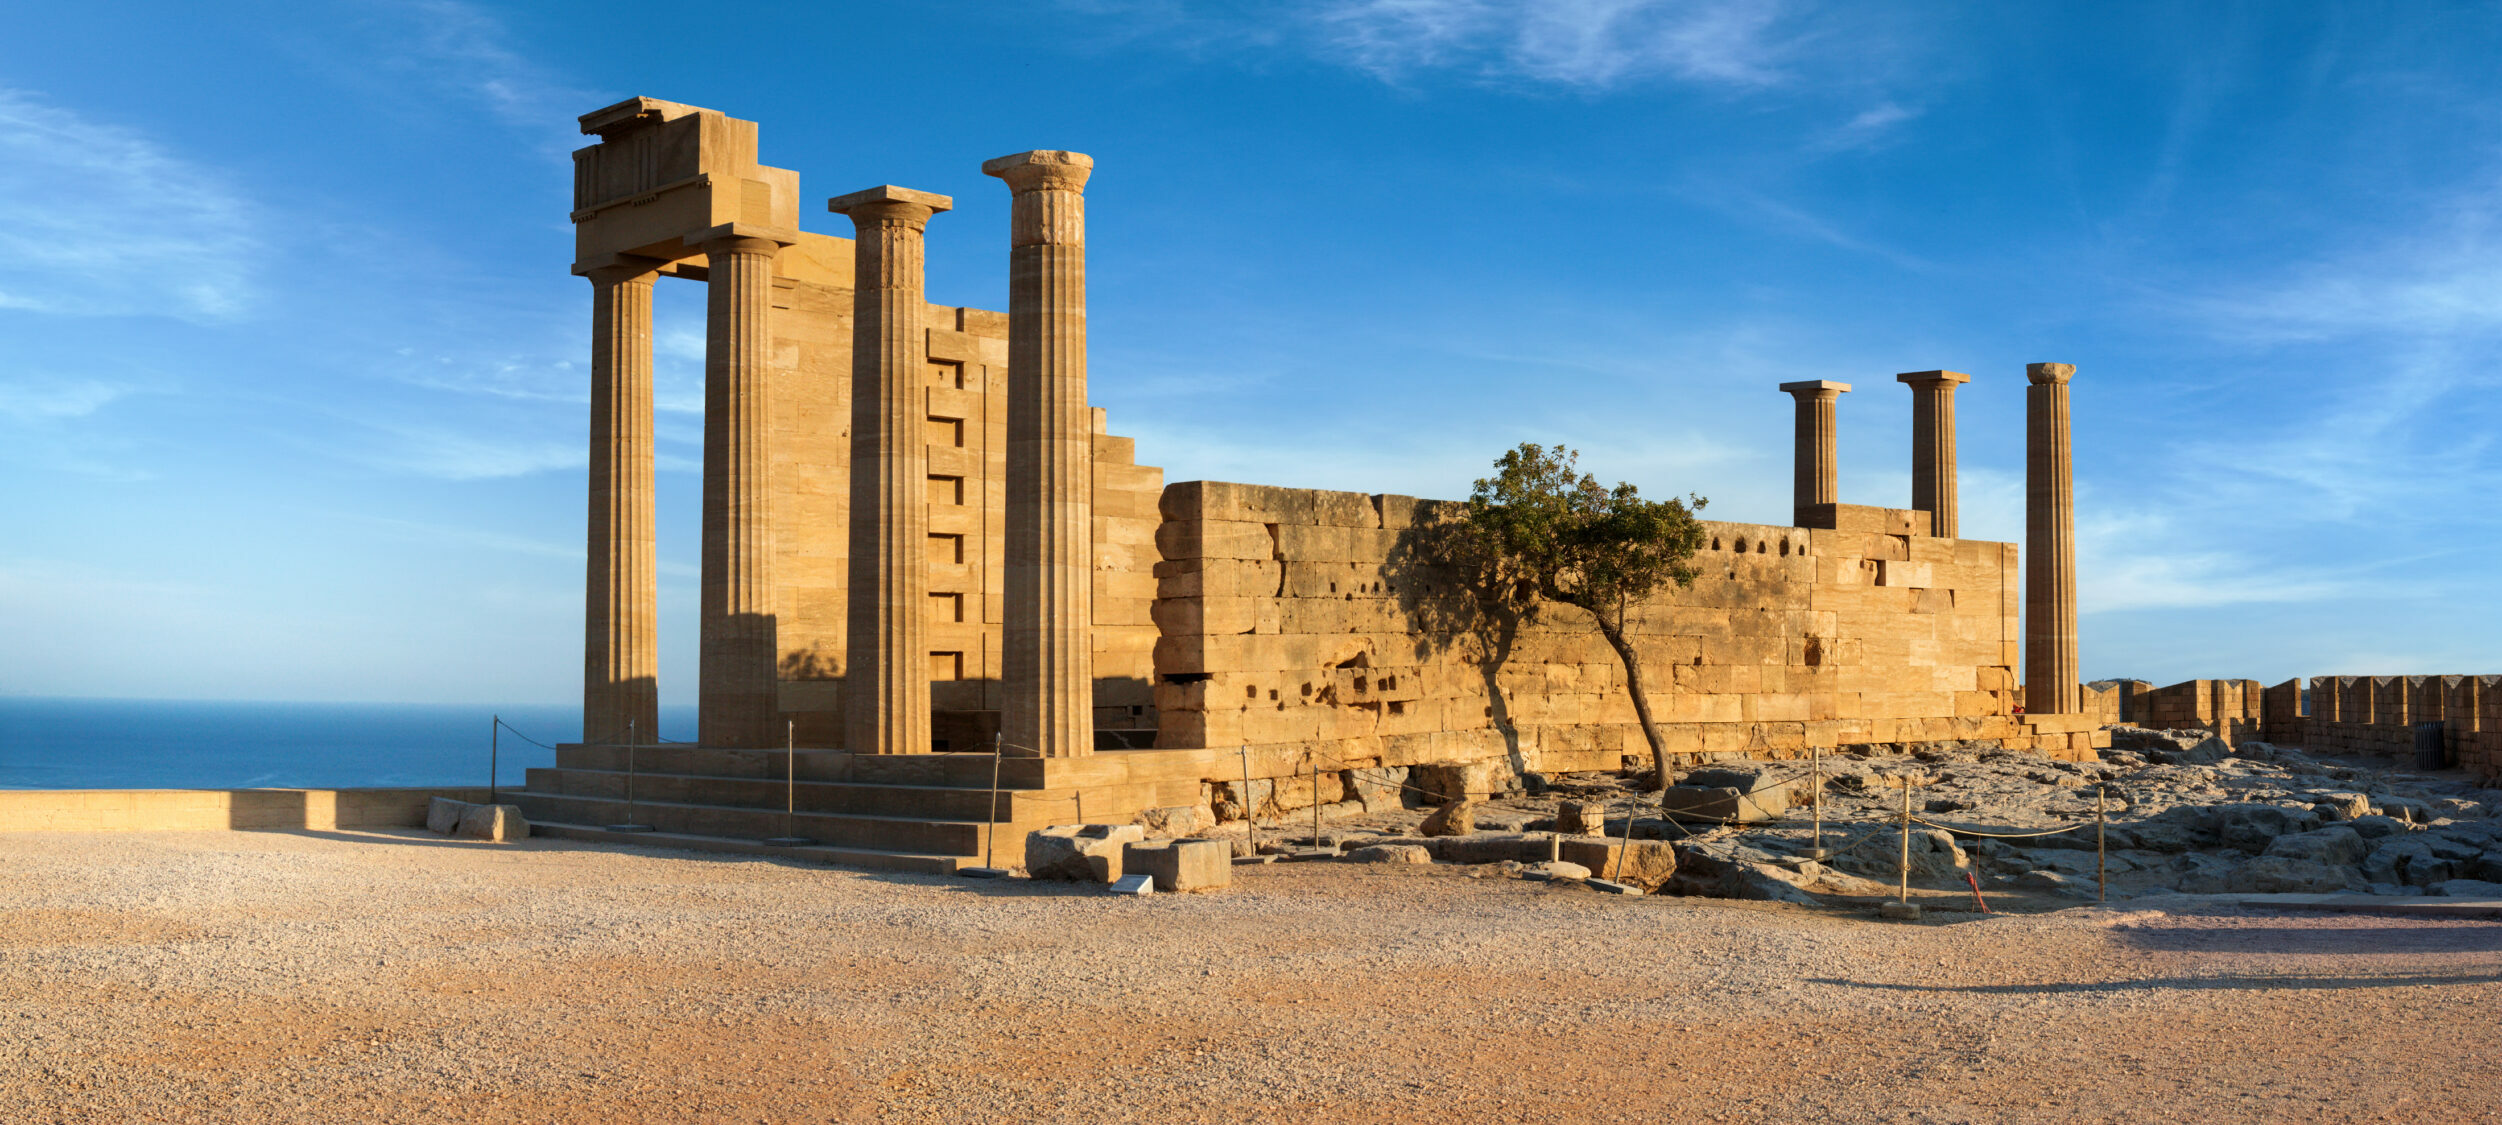 Lindos: The majestic Acropolis of Rhodes